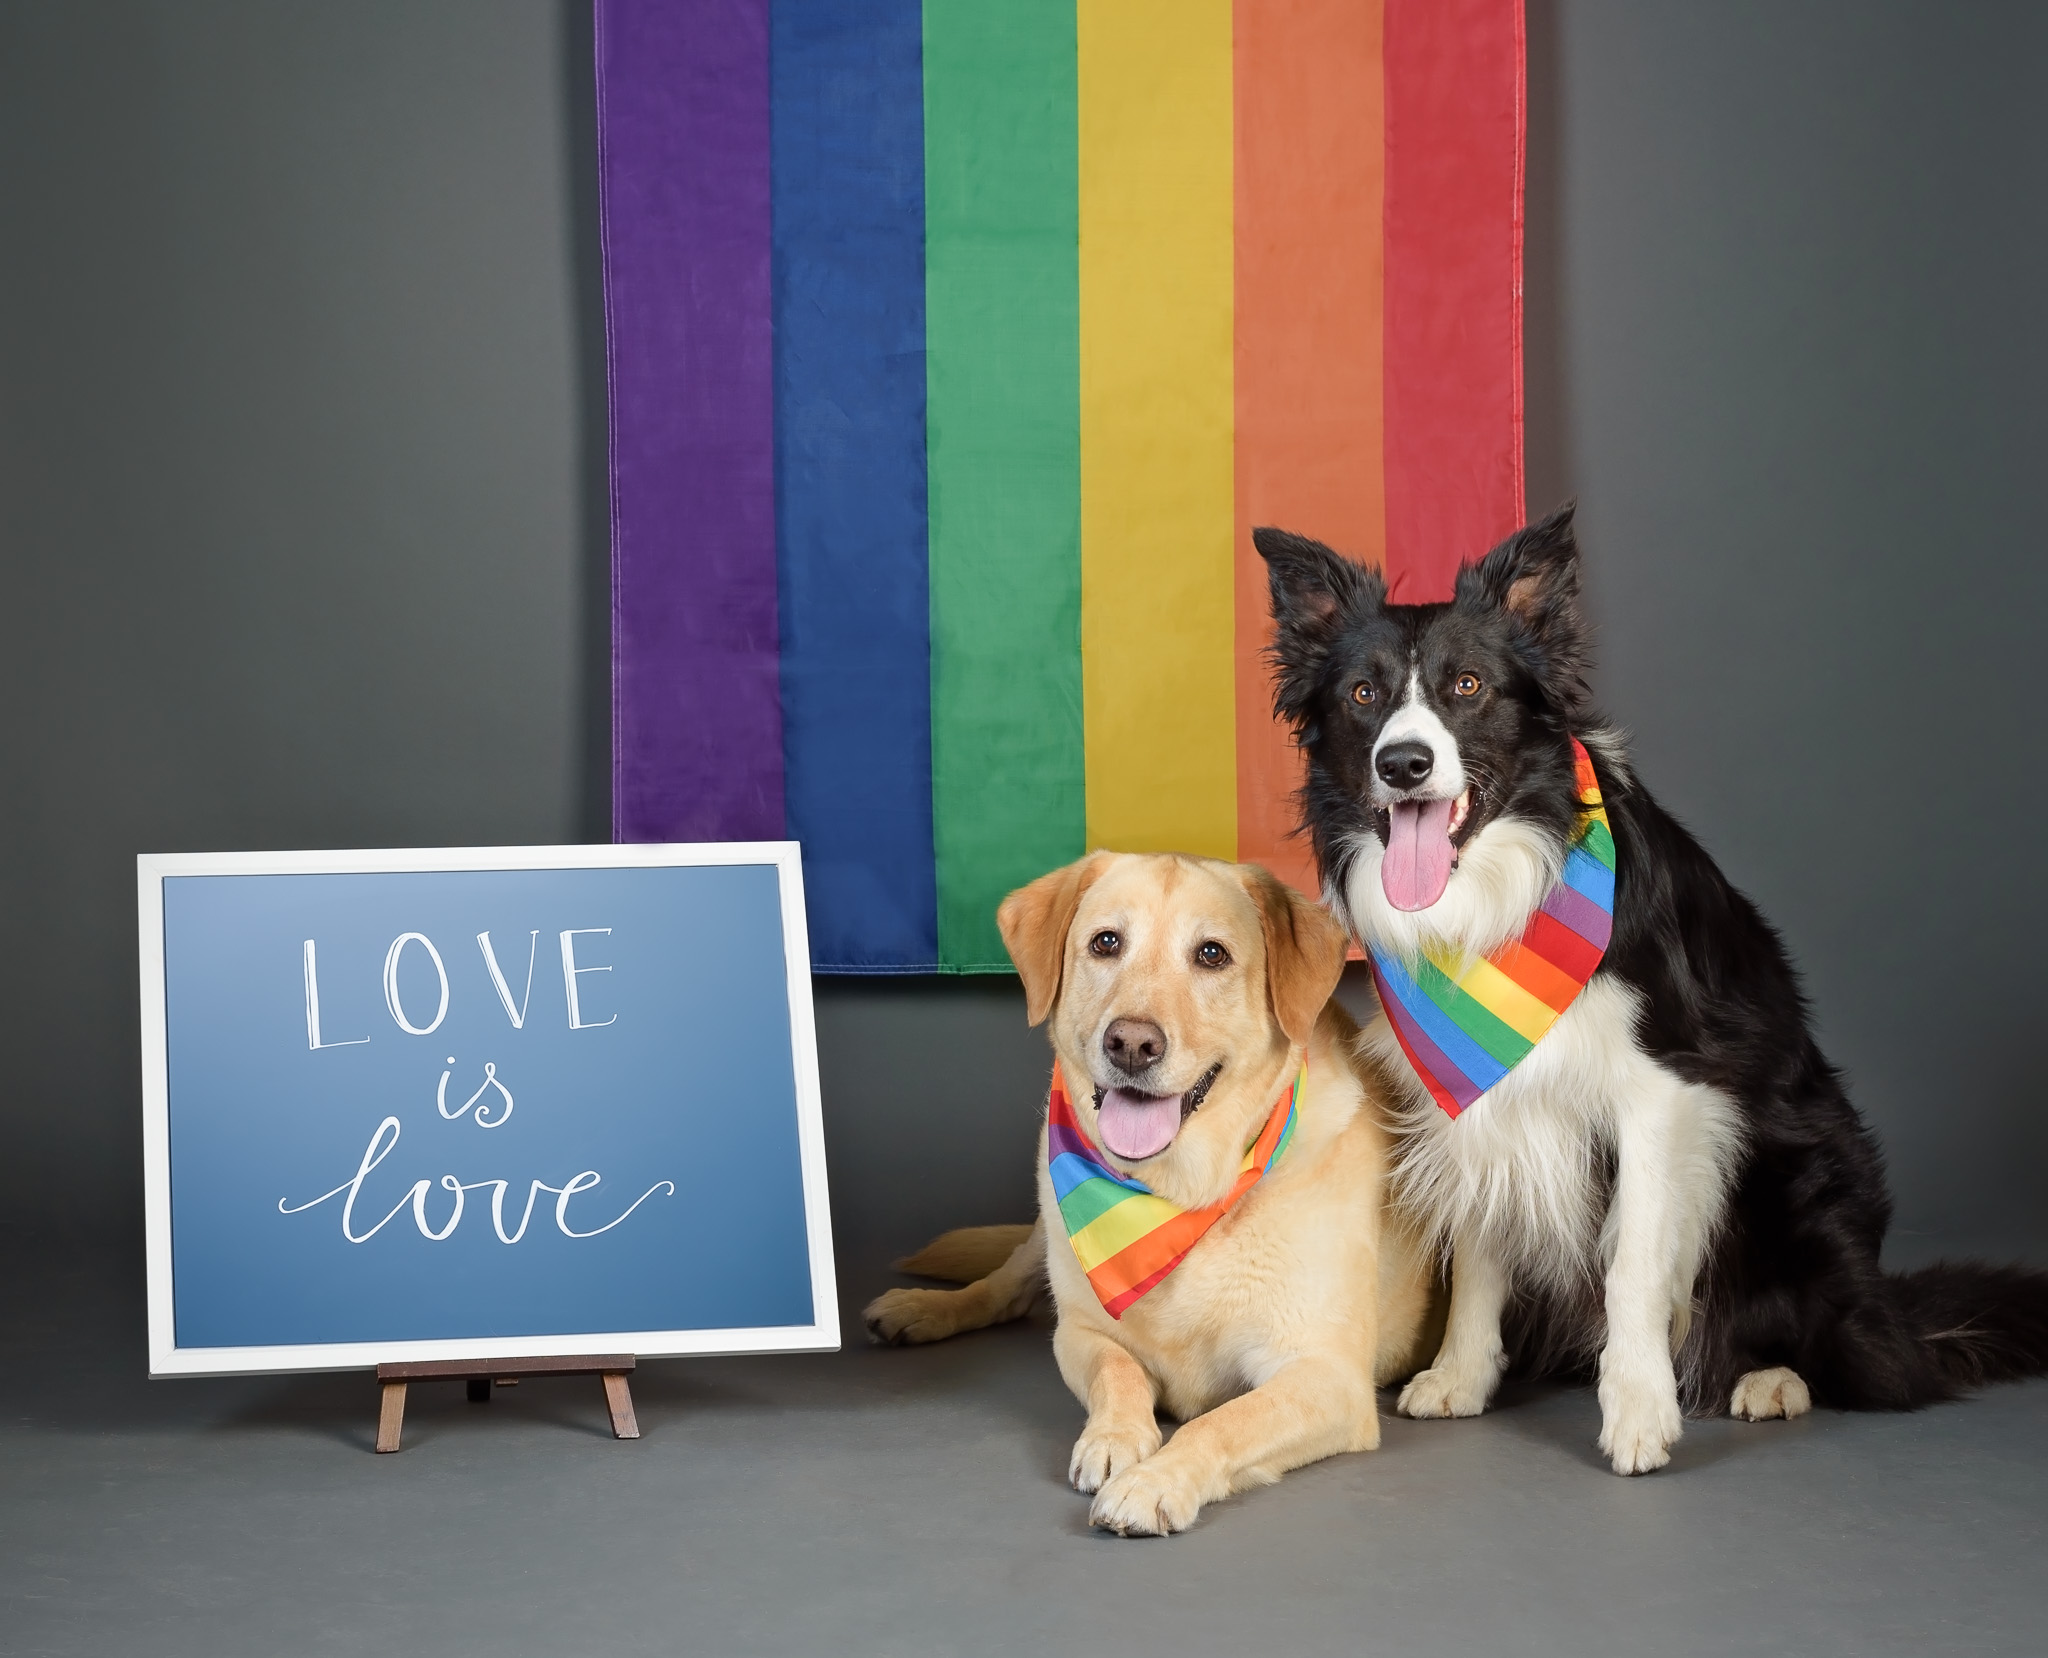 With Love & Dogs Project - Sharing messages of love, hope, kindness & equality